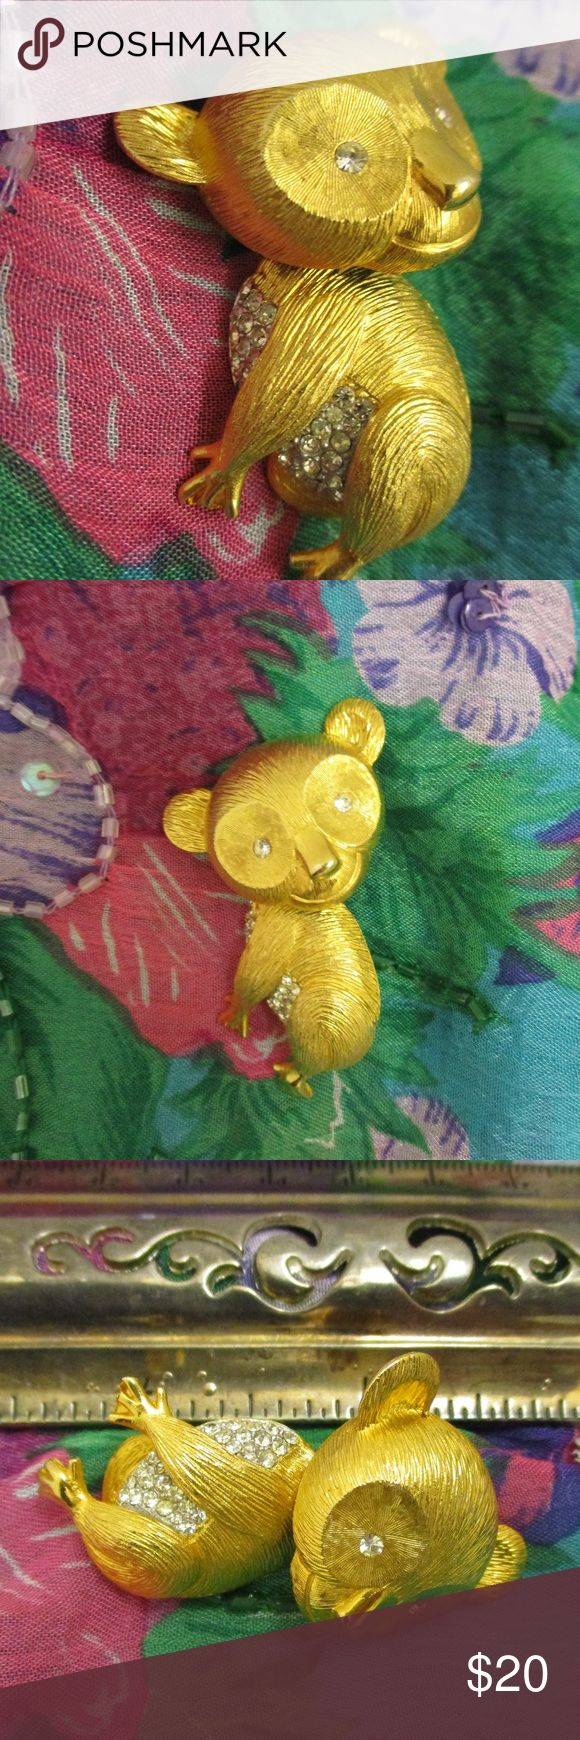 "Rhinestone Gold Koala Bear Trembler Nodder Brooch Darling vintage textured gold tone and pave set clear rhinestone Aussie Koala Bear trembler en tremblant nodder brooch. This cute critter has a chest and tummy full of sparkling clear faceted rhinestones with two additional rhinestones for the eyes. Gold texture resembles fur with areas of smooth gold on nose and paws.  His darling head is on a spring and trembles, shakes and shudders with every movement. Just precious!!  2"" x 1 1/2"" x @ 3/4""…"